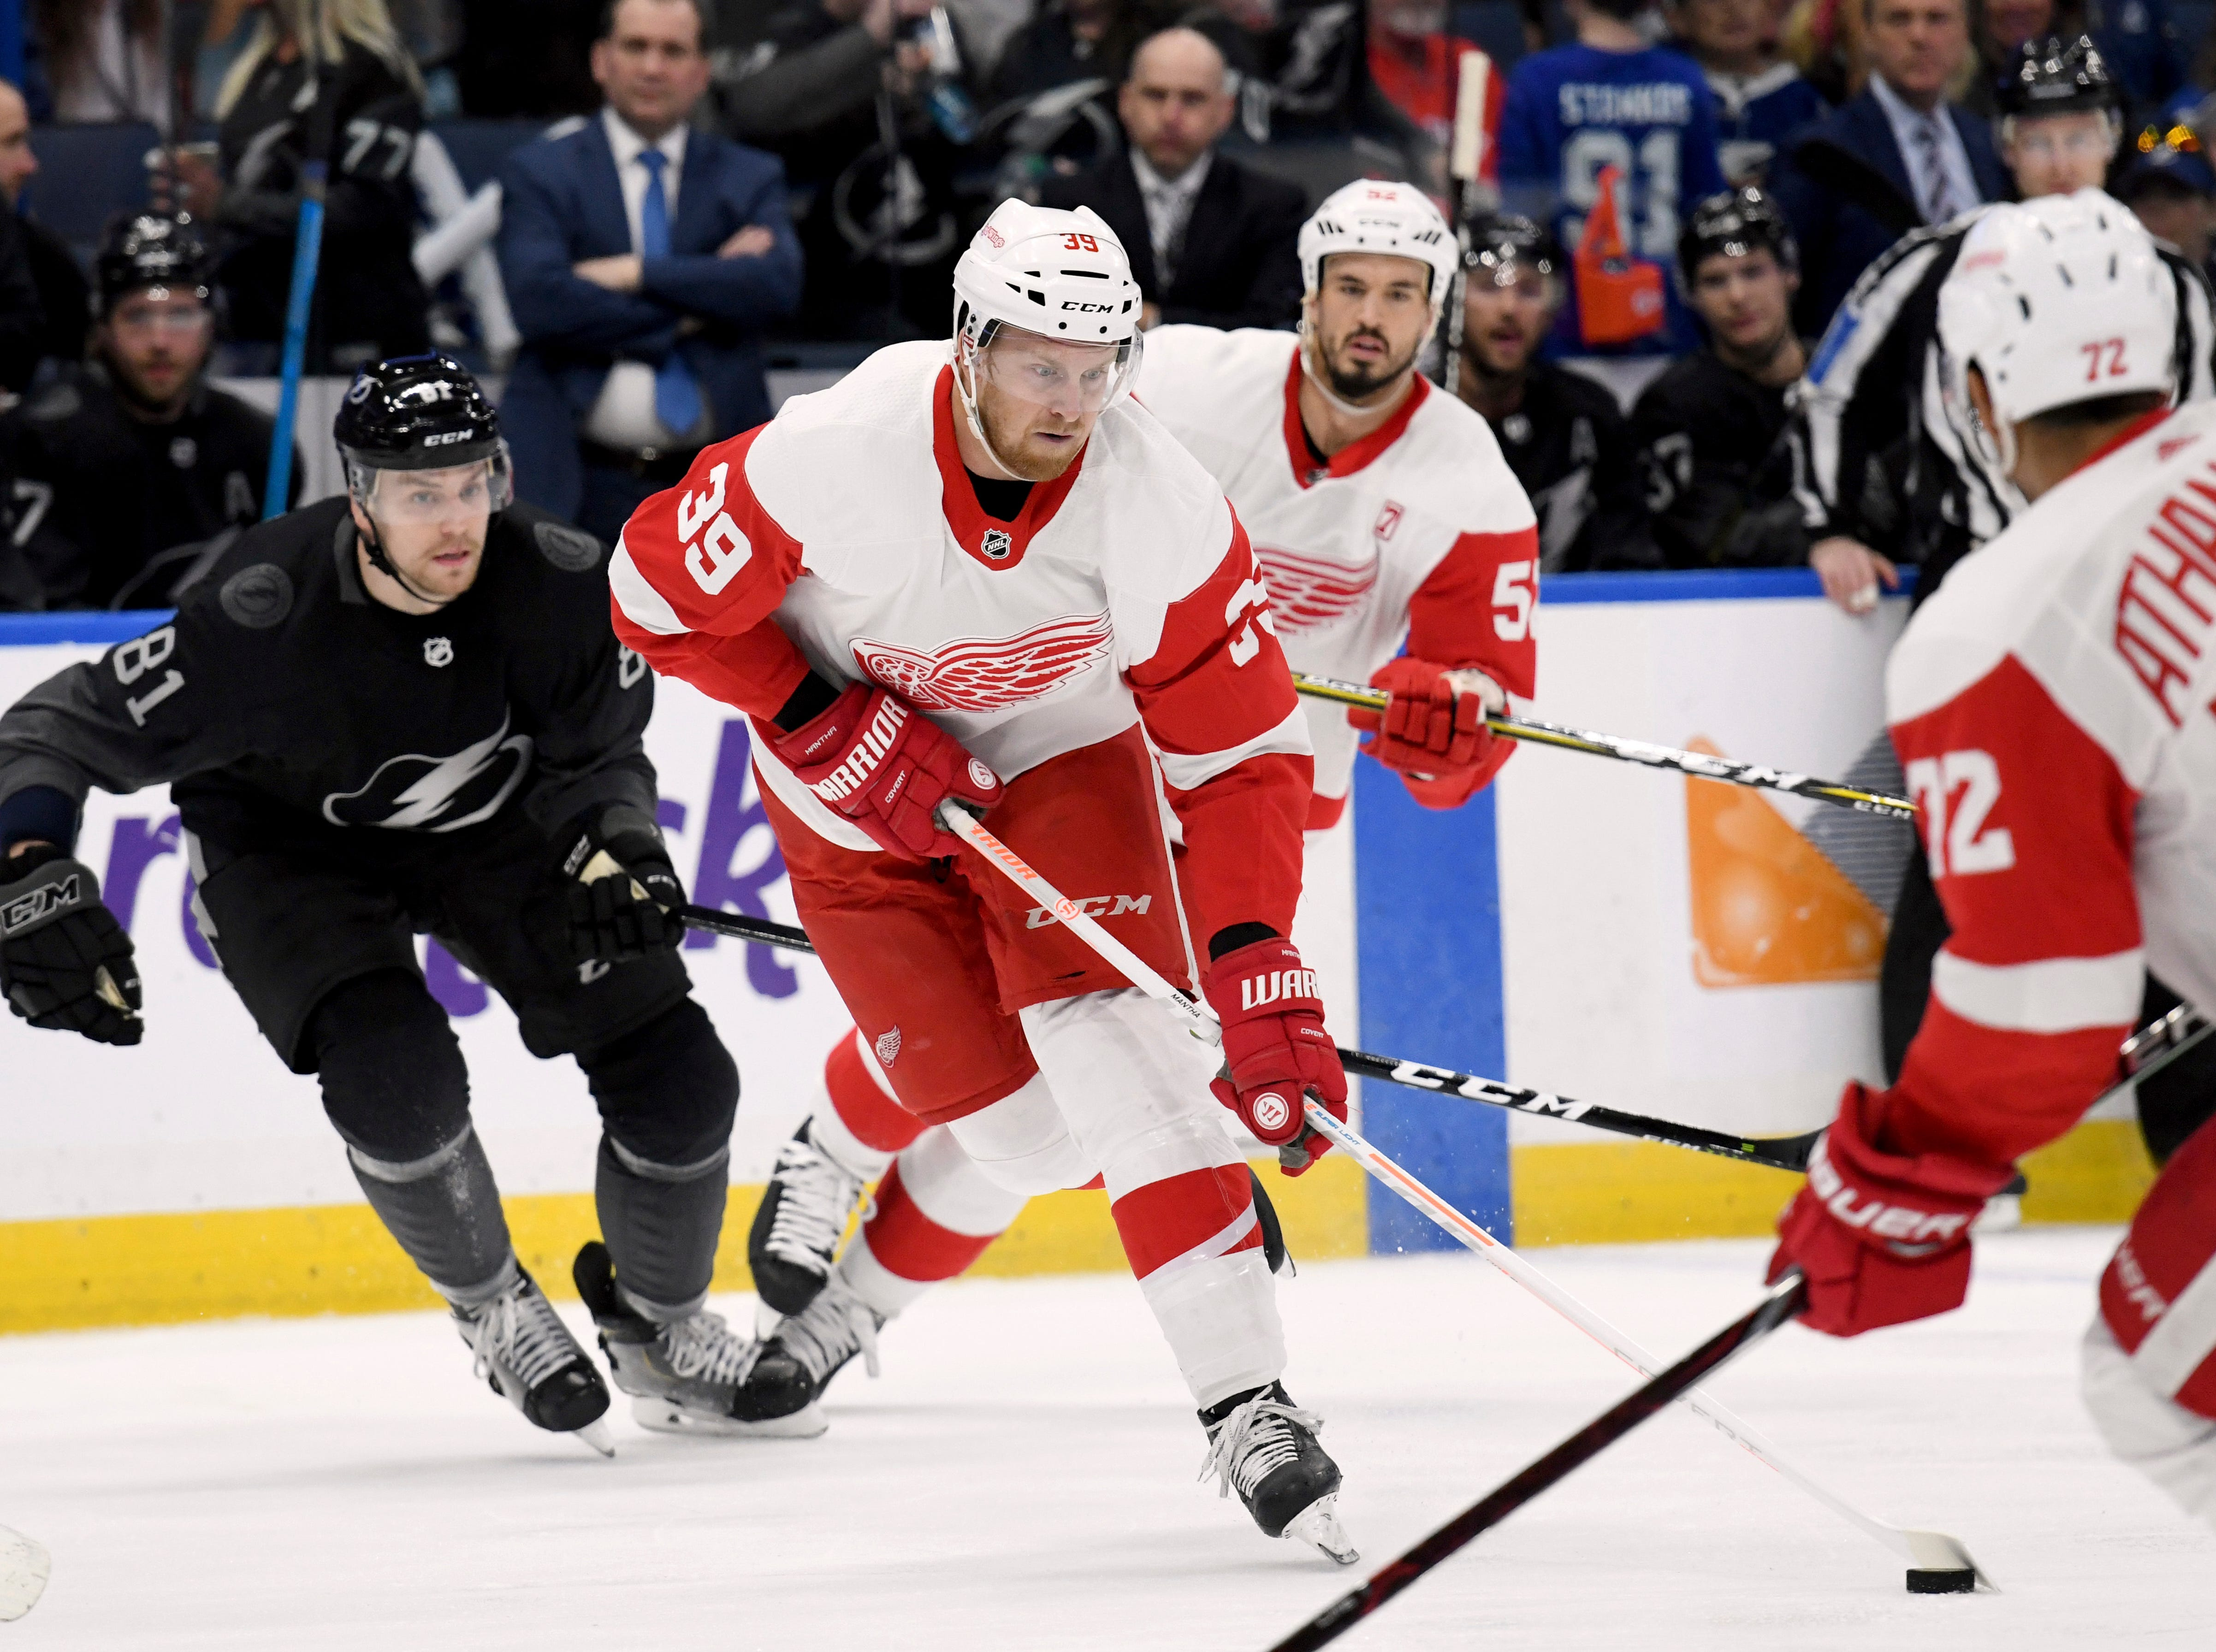 Detroit Red Wings right wing Anthony Mantha (39) handles the puck during the first period of an NHL hockey game against the Tampa Bay Lightning Saturday, March 9, 2019, in Tampa, Fla. (AP Photo/Jason Behnken)